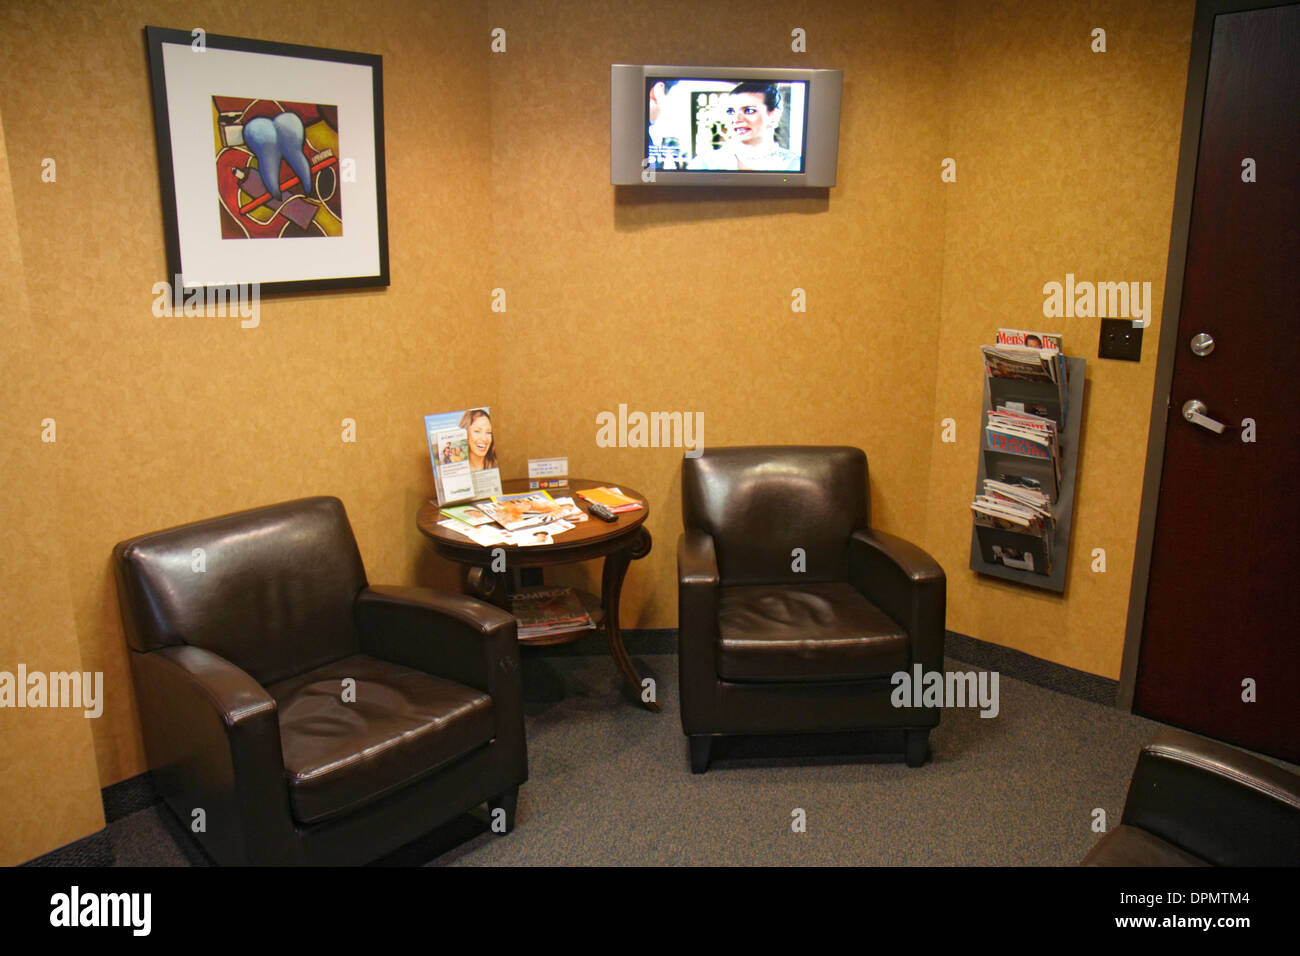 Miami Beach Florida Dentists Office Waiting Room Area Furniture Chairs Flat Panel TV Television